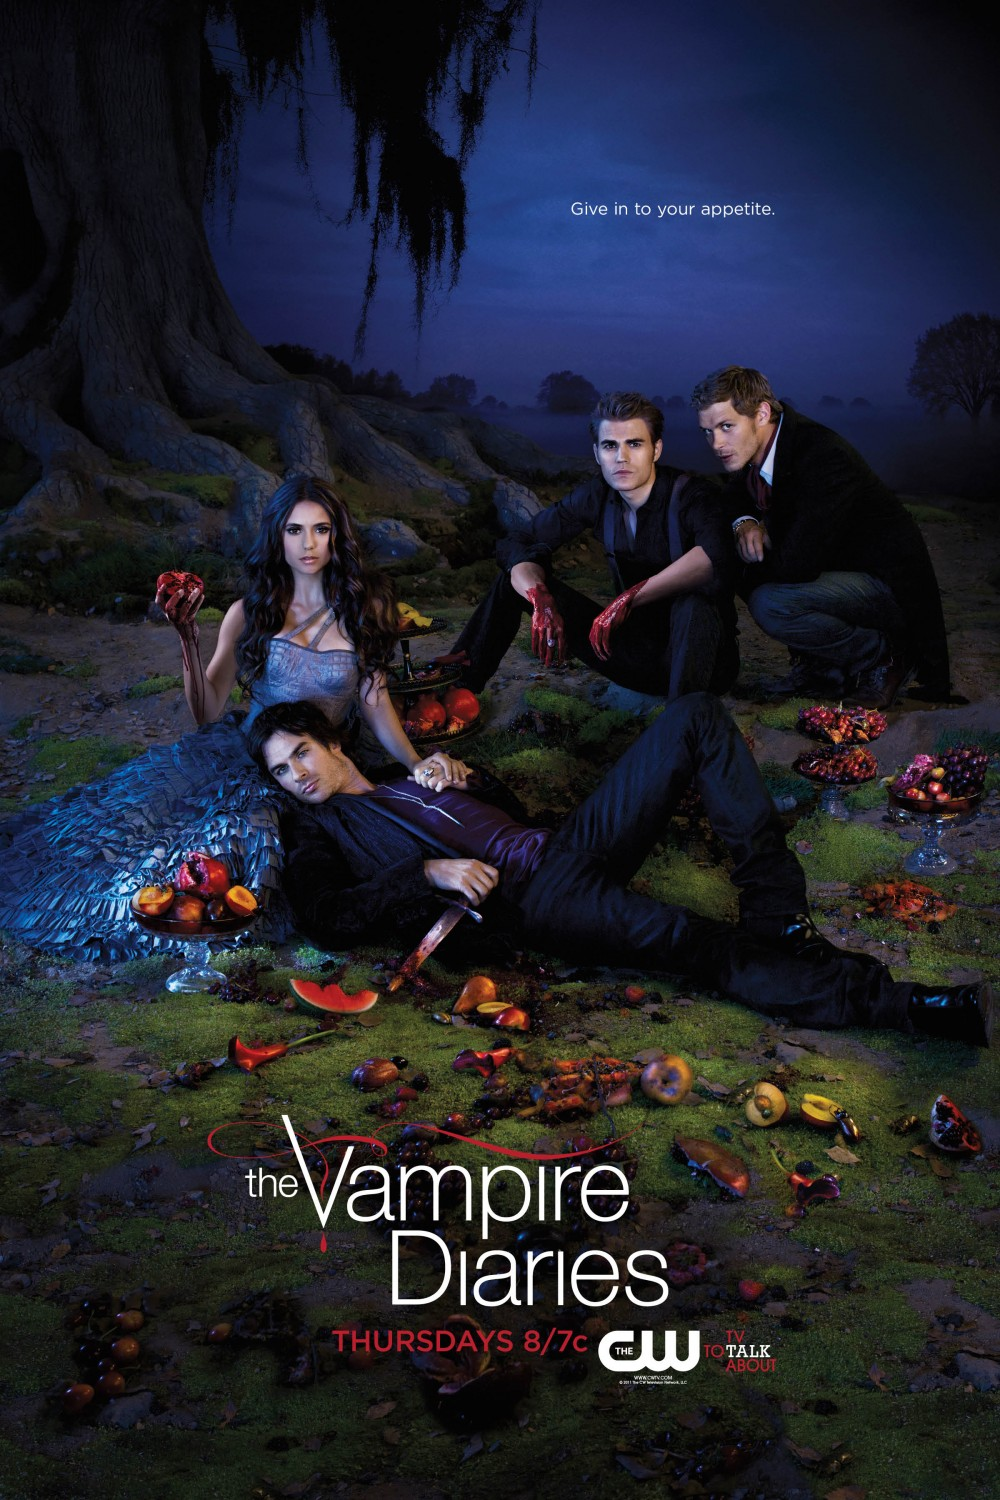 Quarantine the Undead has been placed in trailers for the final series of The Vampire Diaries. -